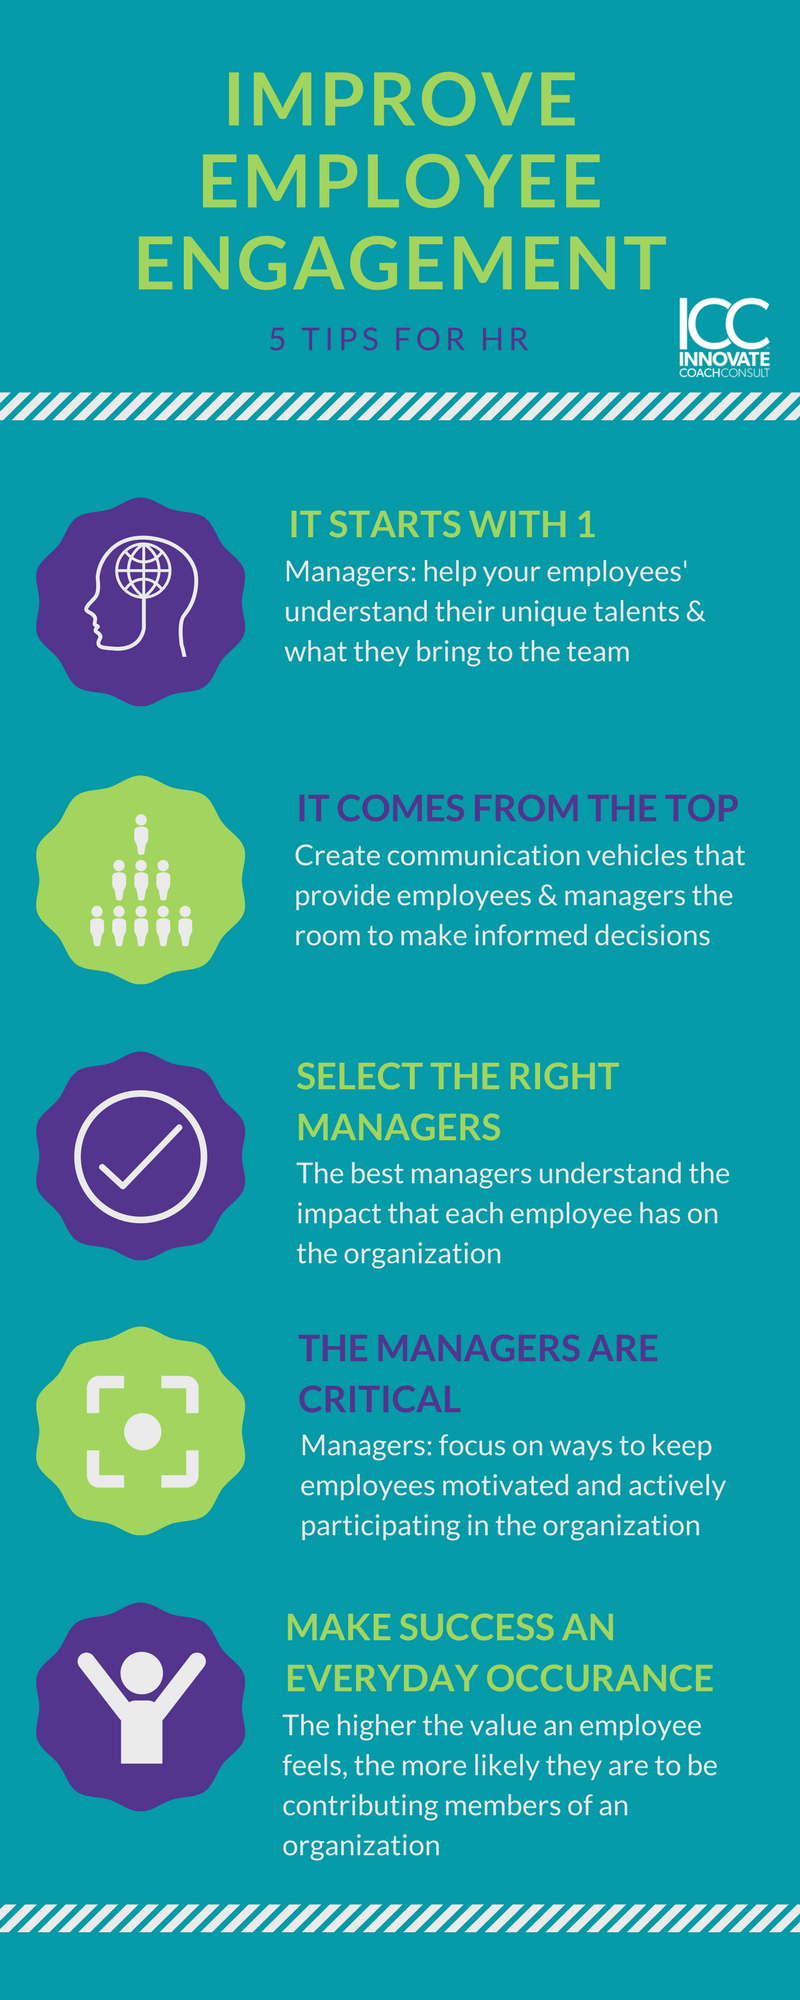 5 Ways HR Can Improve Employee Engagement